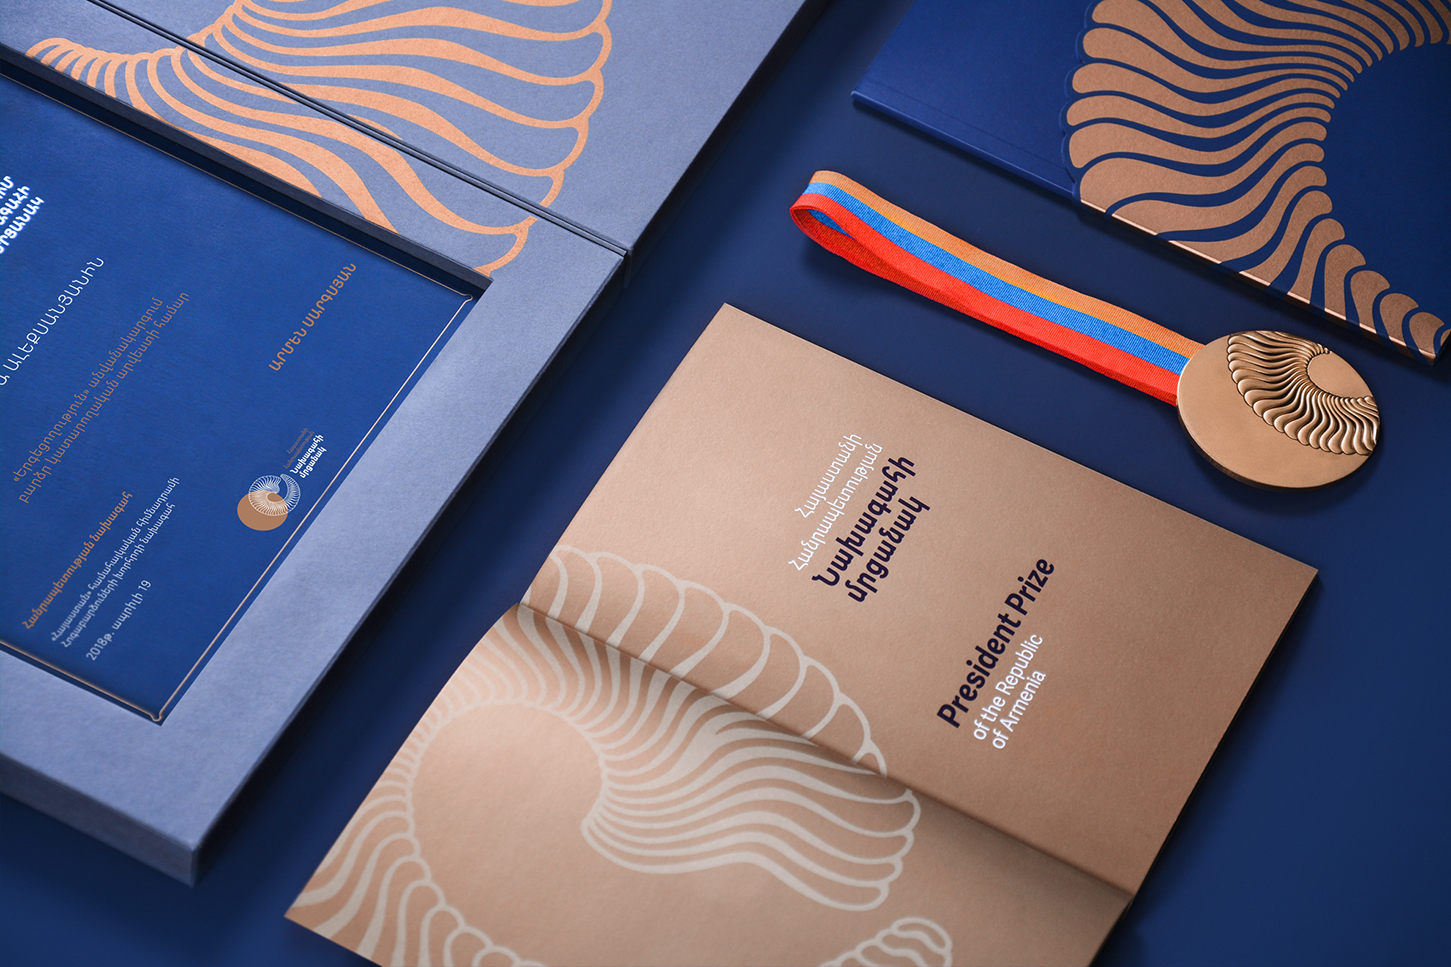 Cool Brand and Packaging Design for President Prize of Armenia / World Brand and Packaging Design Society